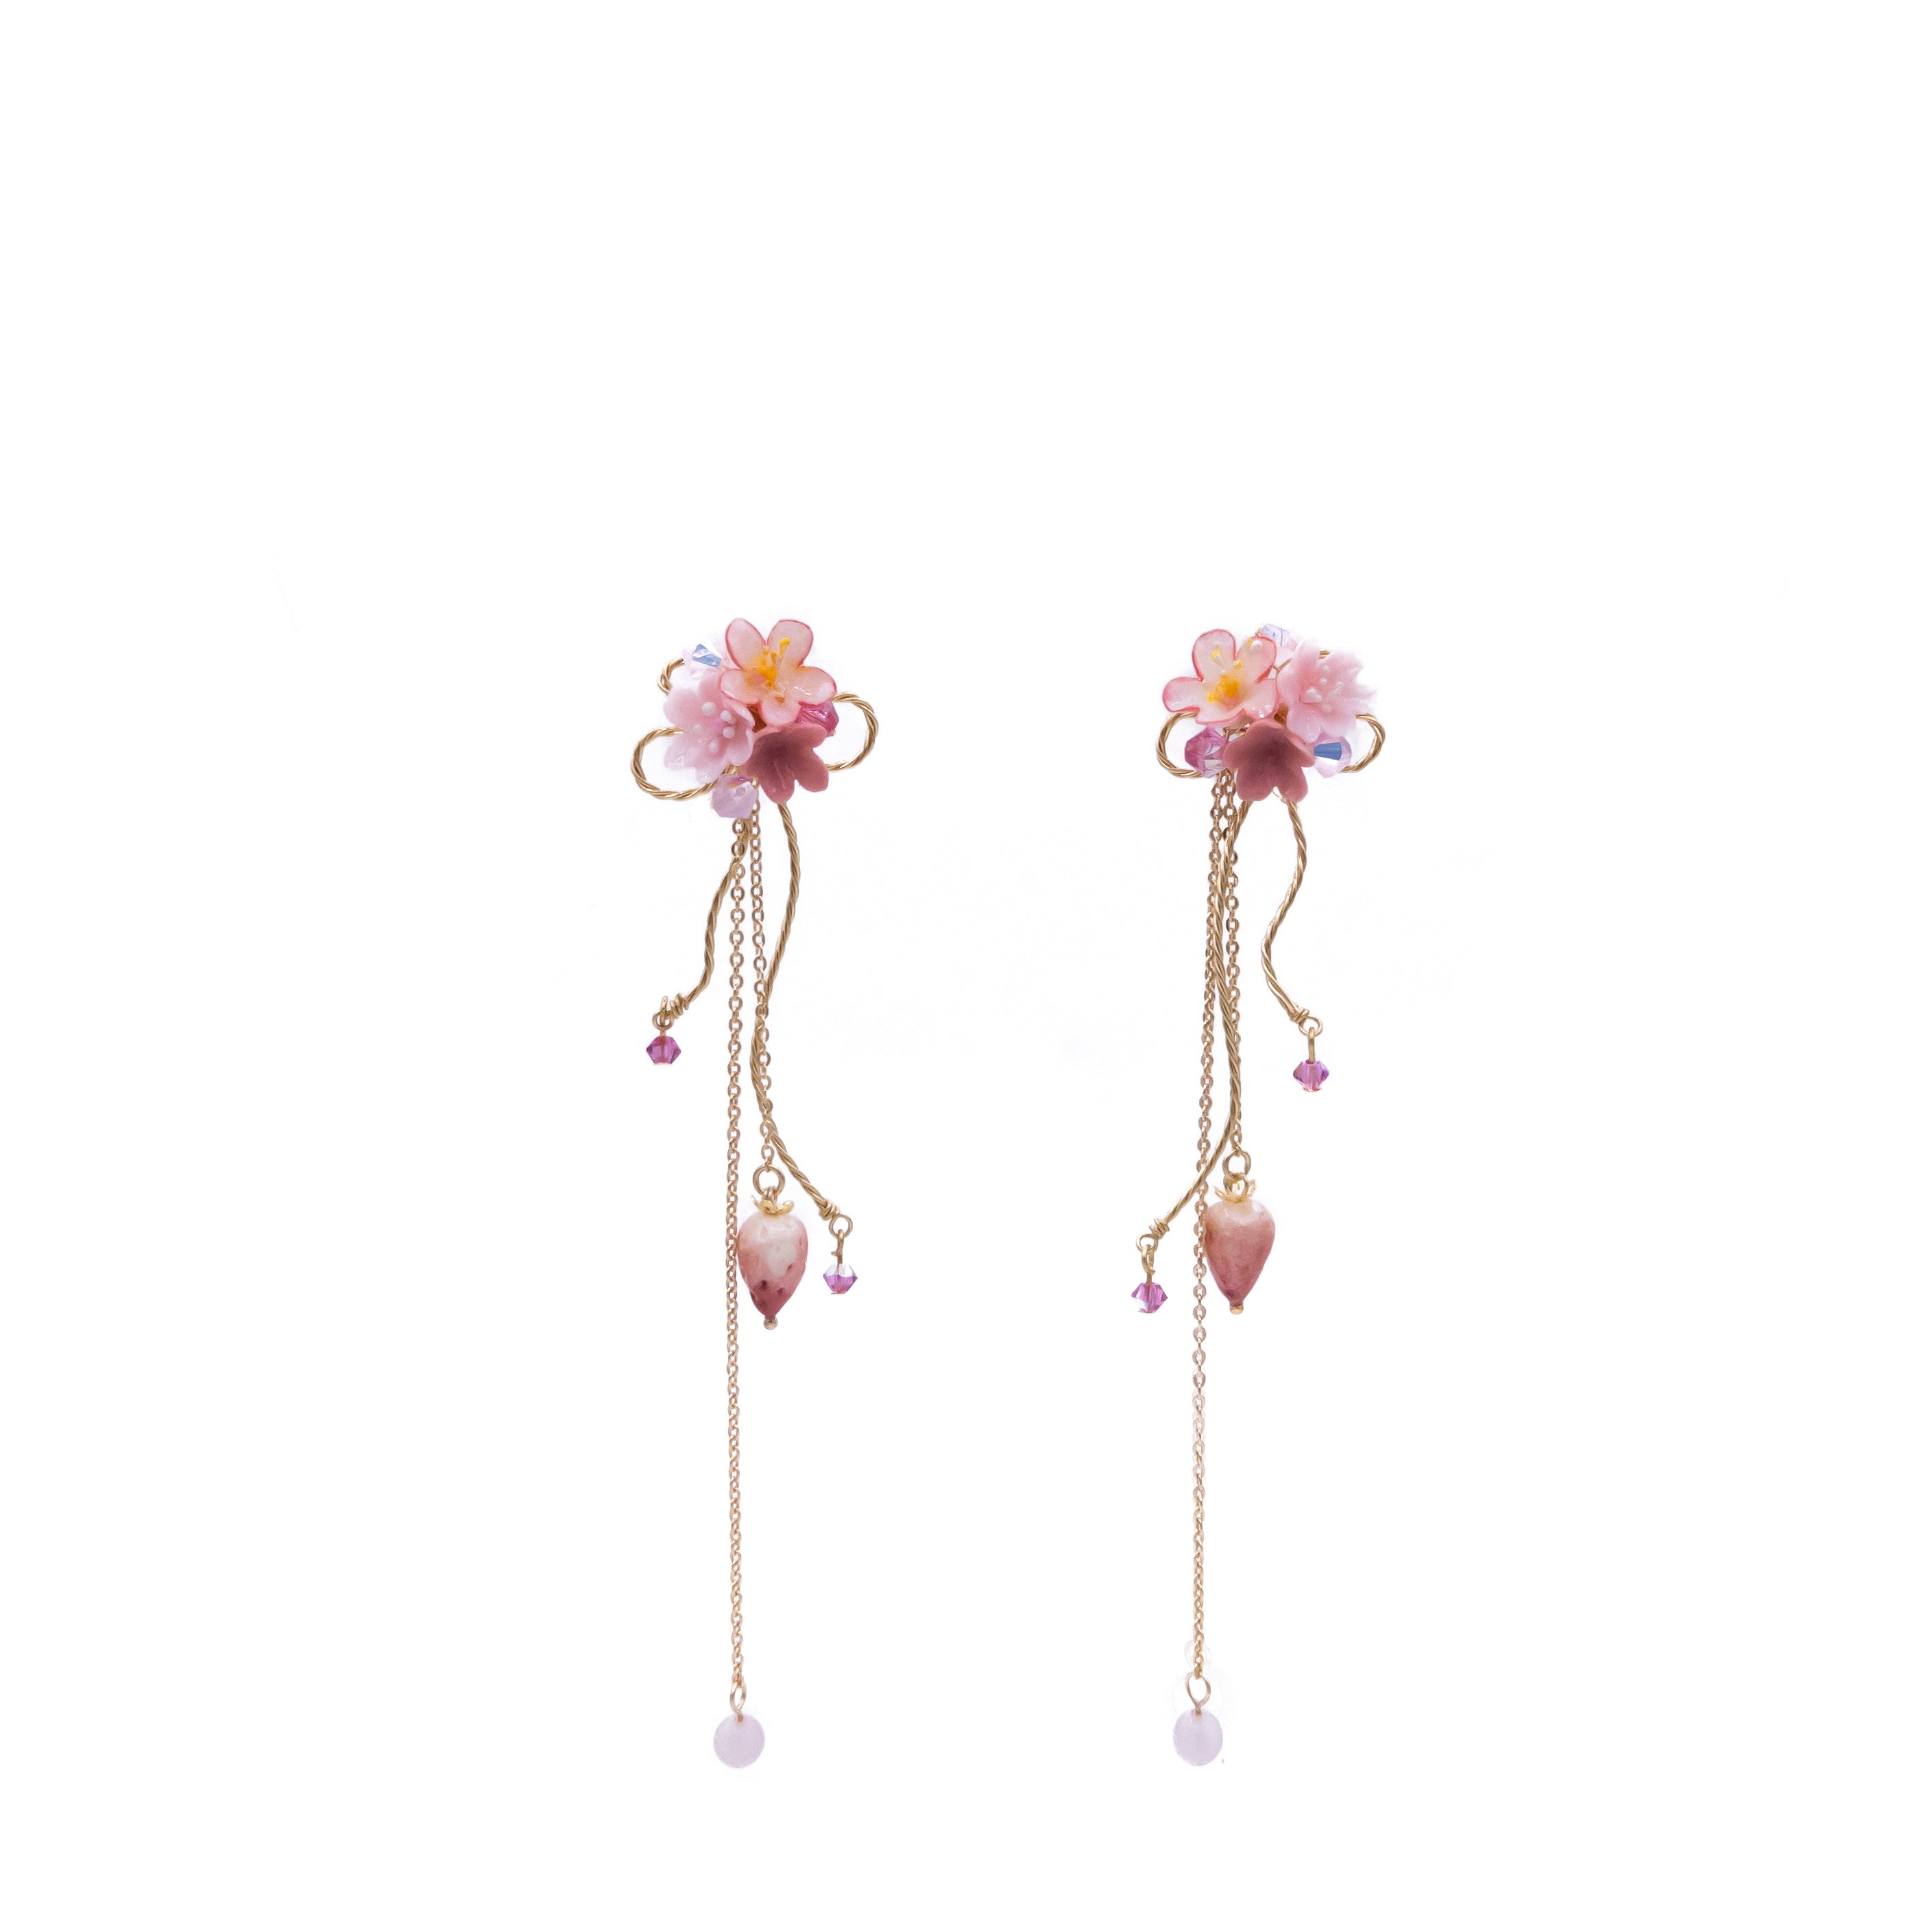 Venus's Kiss 5-in-1 14K Gold-plated 925 Silver Earrings (with detachable ear cuff)